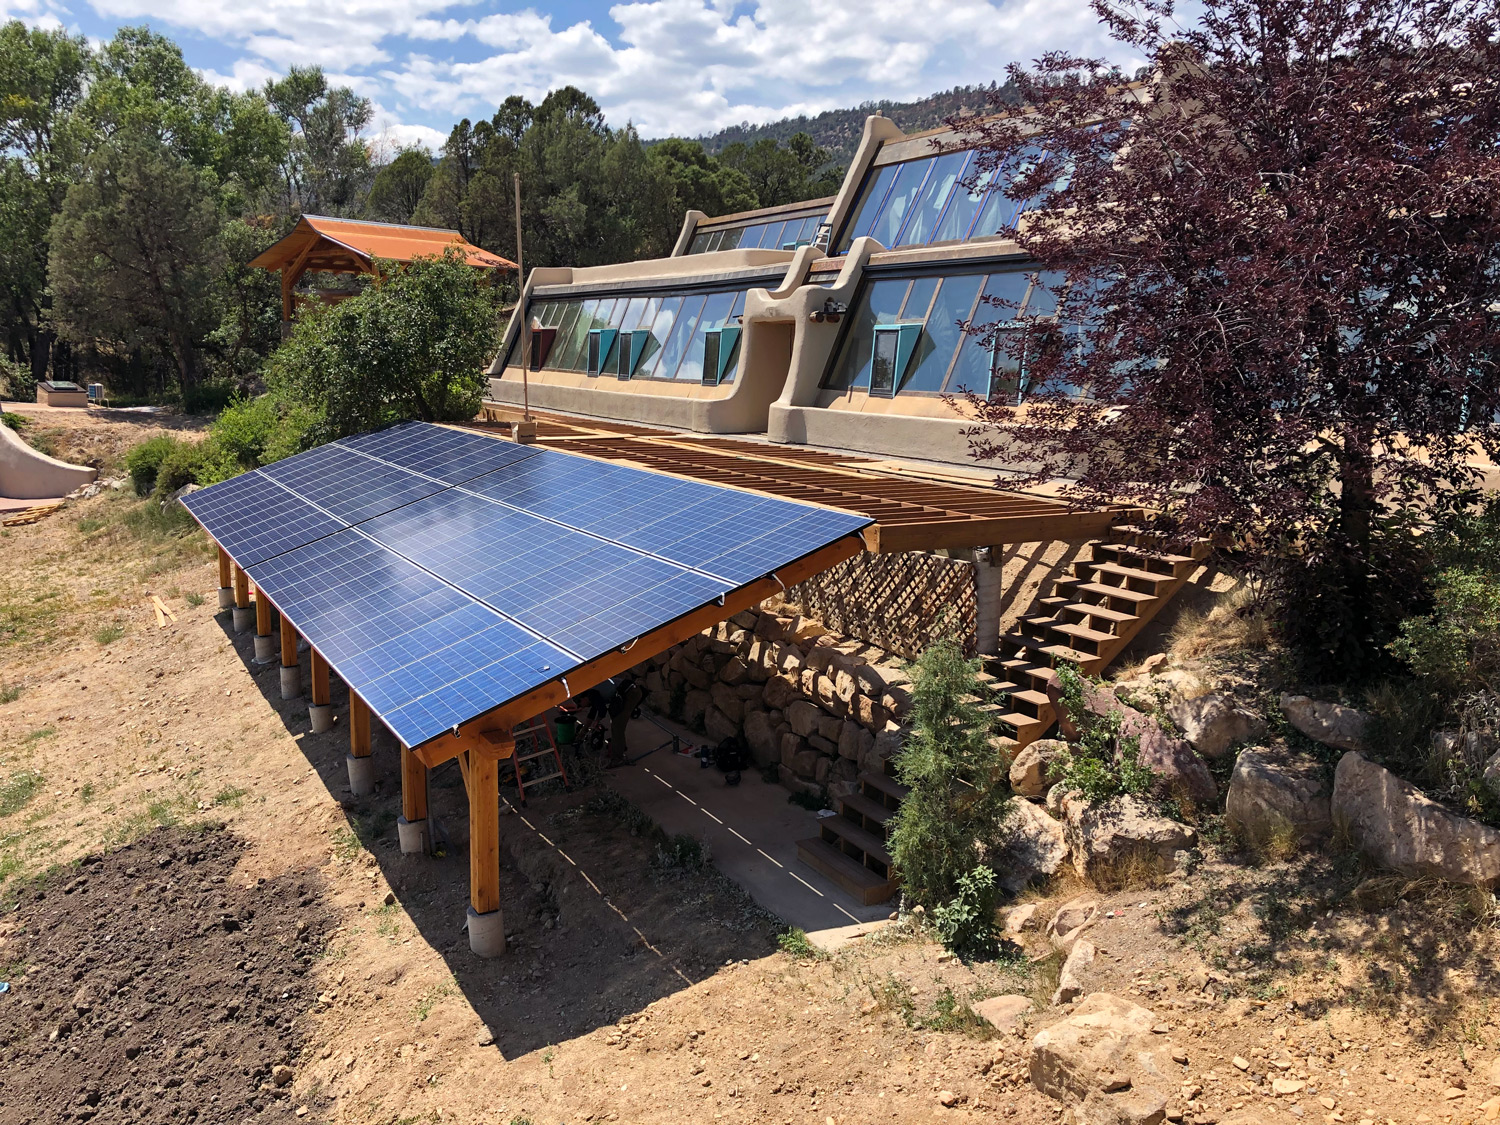 The solar power system we designed for this unique earthship home